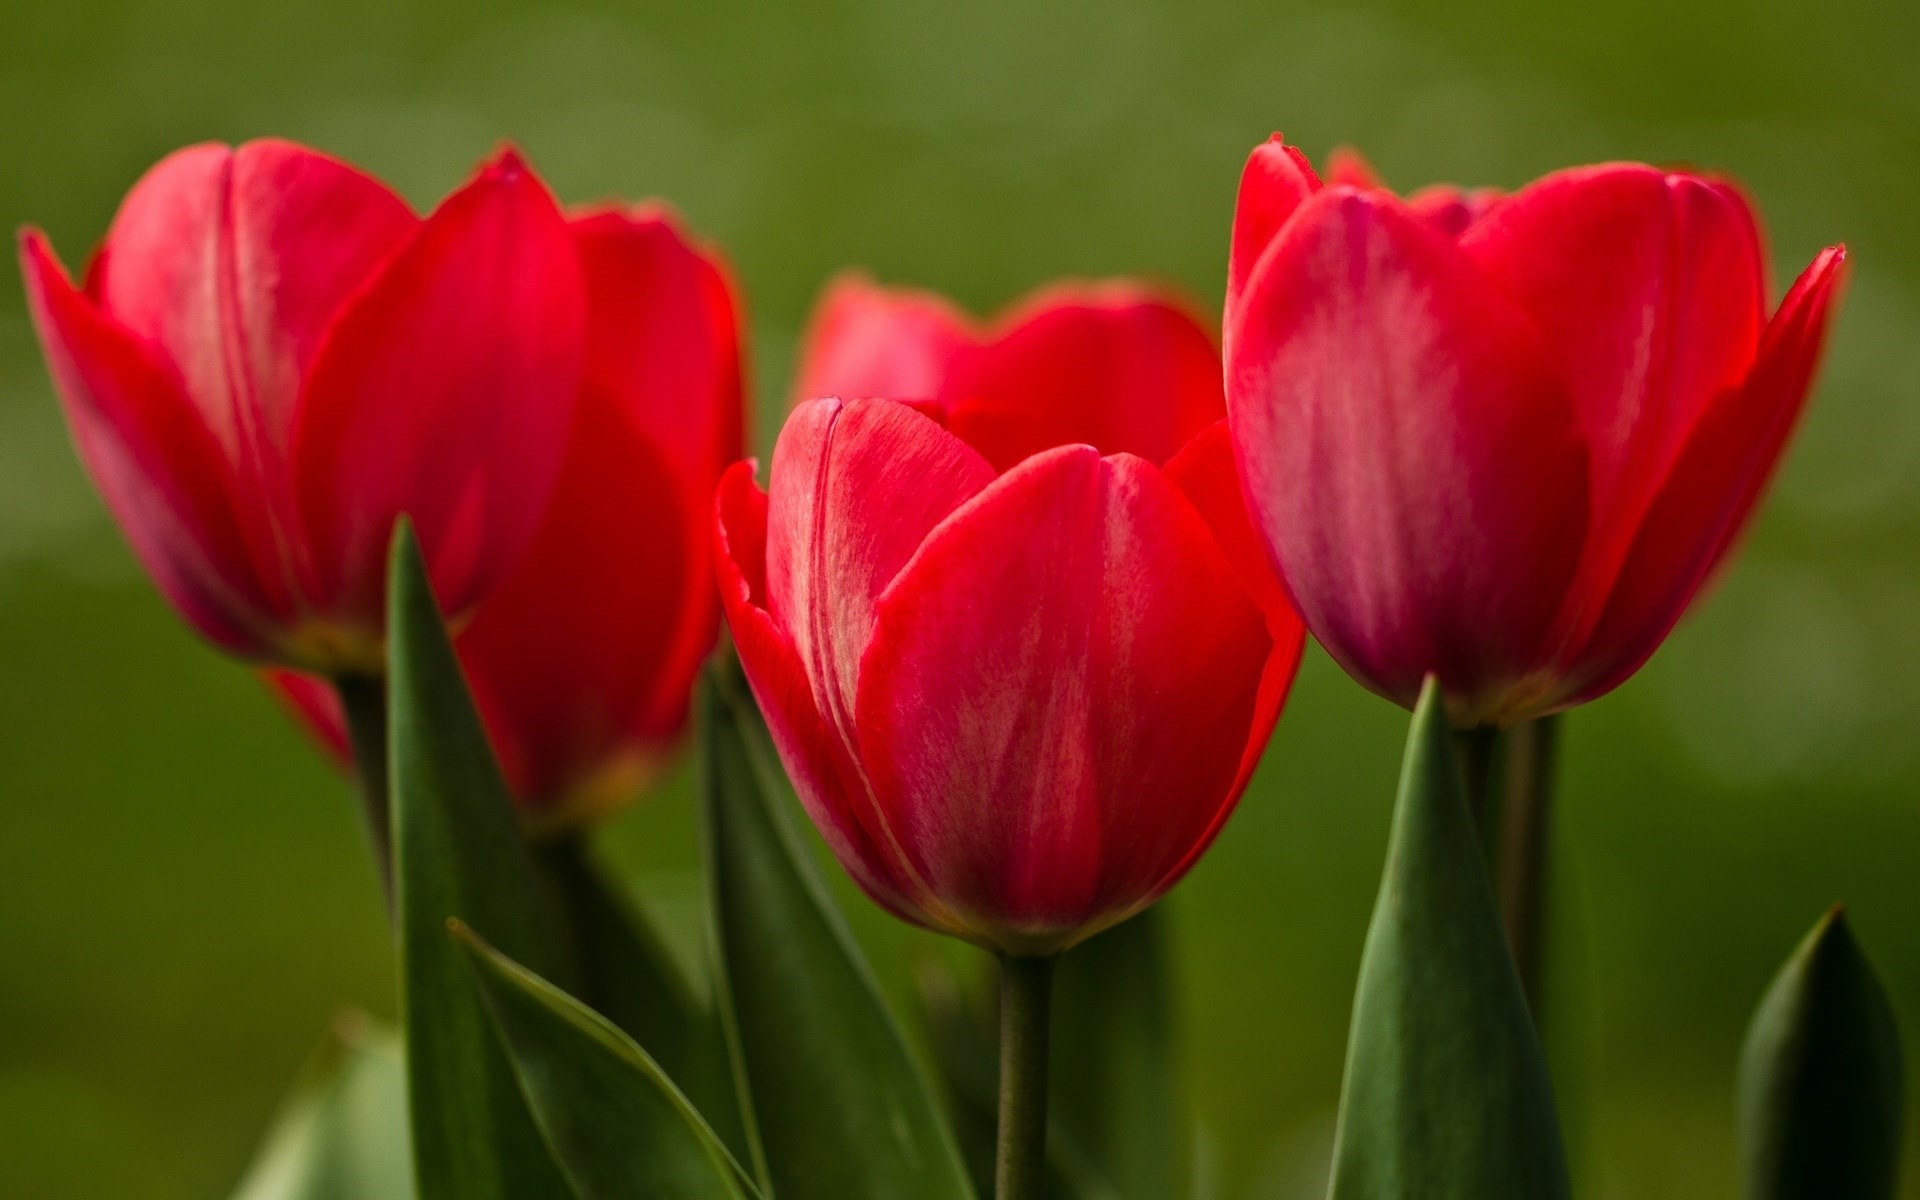 Red Tulips Wallpaper 19878